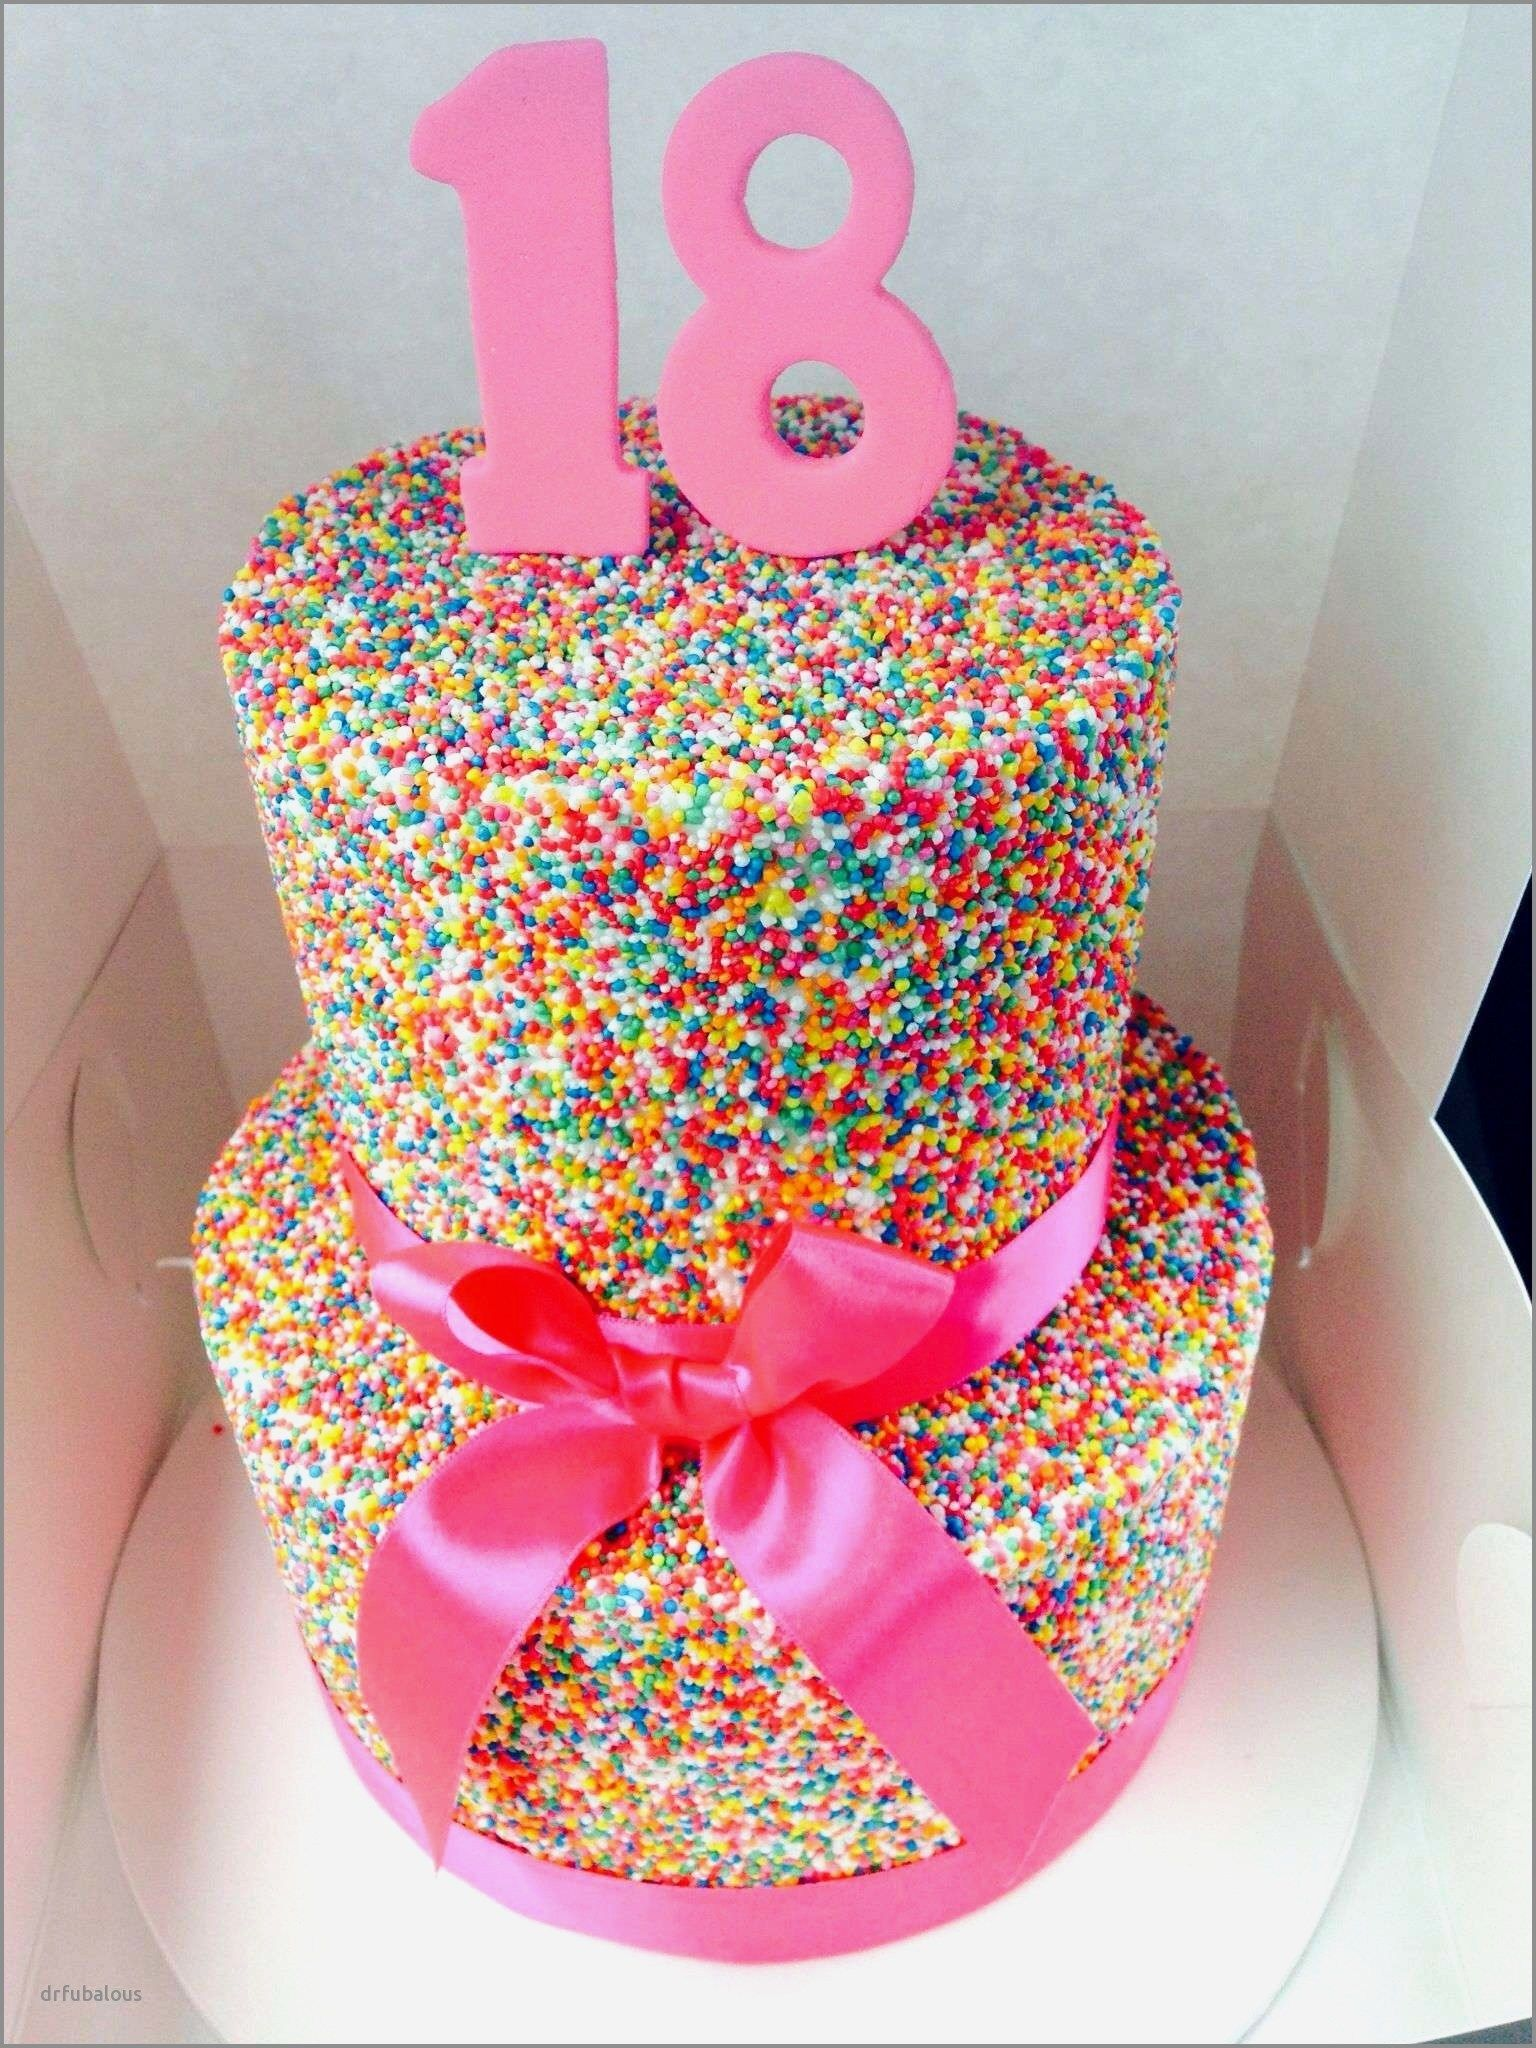 25 Wonderful Photo Of 10 Year Old Birthday Cakes With Images